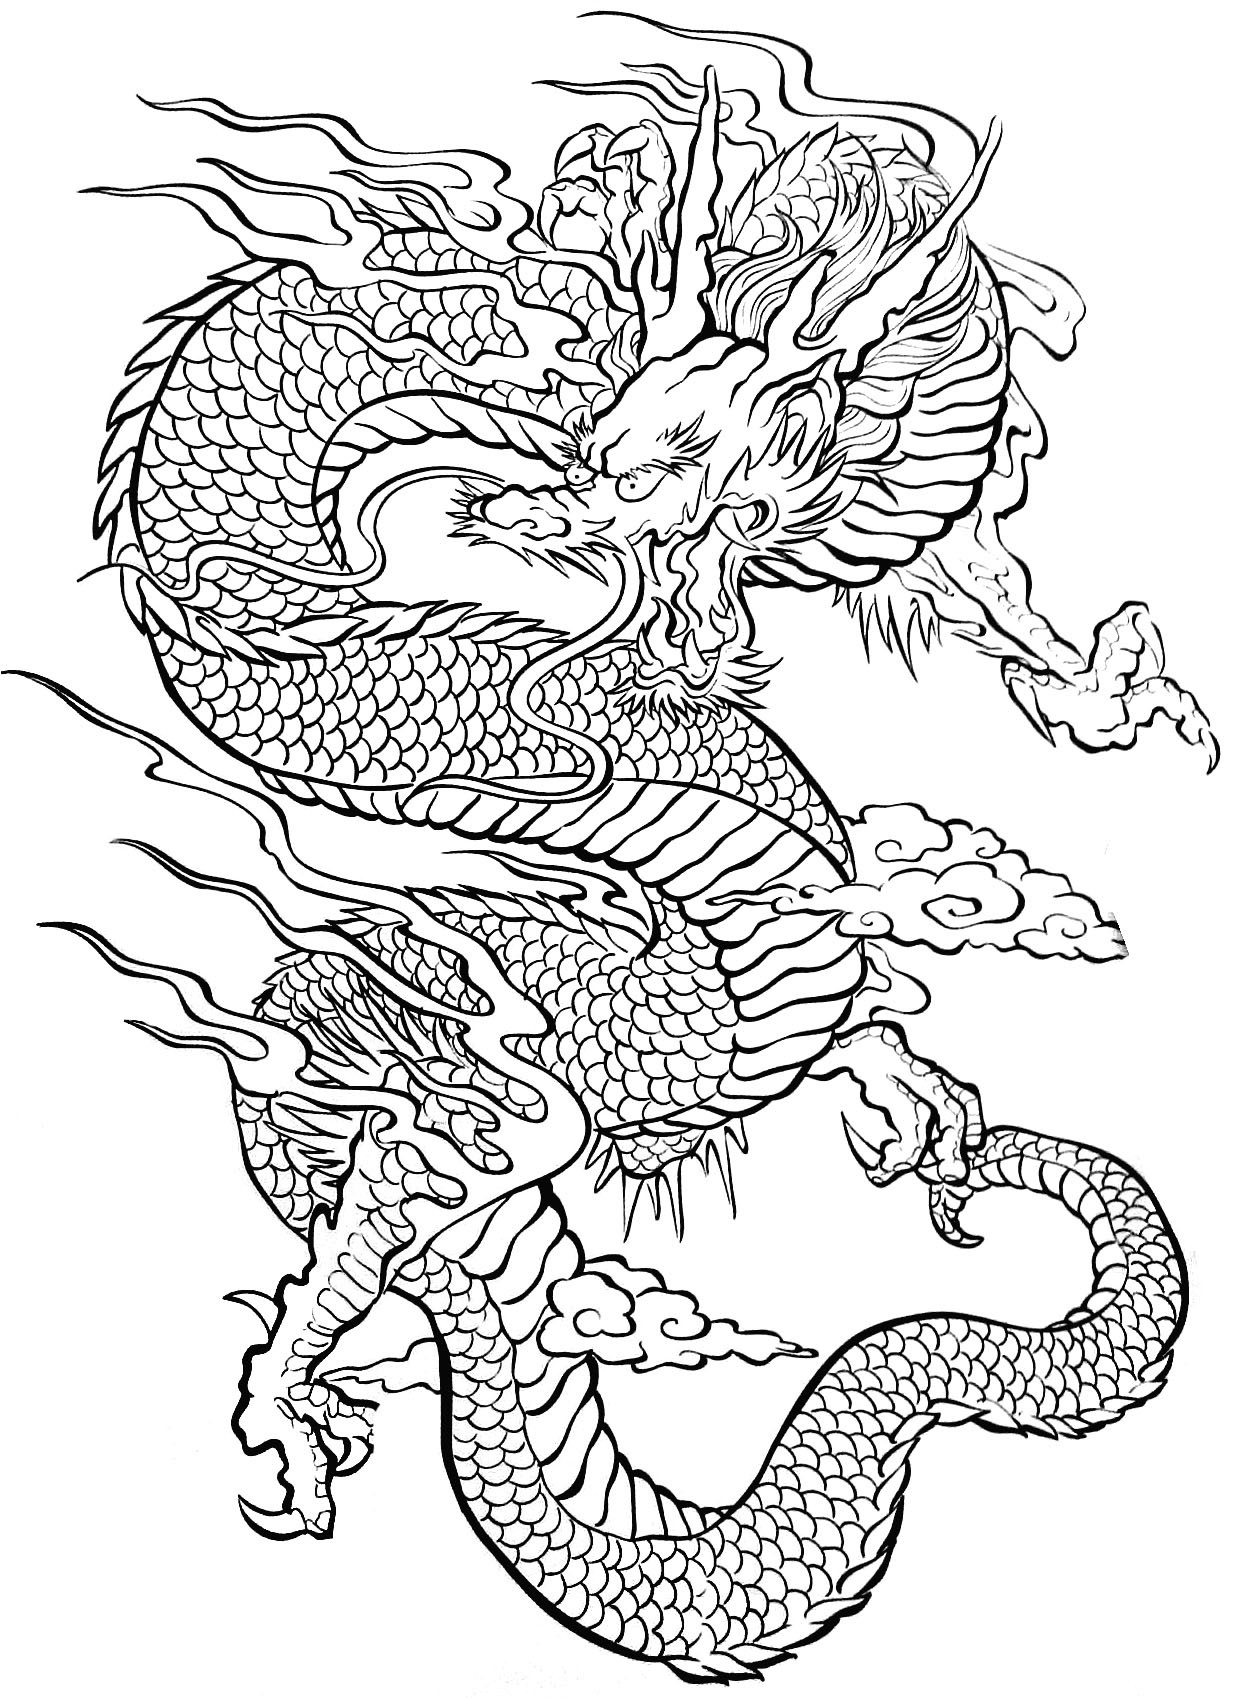 Tattoo Coloring Pages For Adults  Tattoo dragon Tattoos Adult Coloring Pages